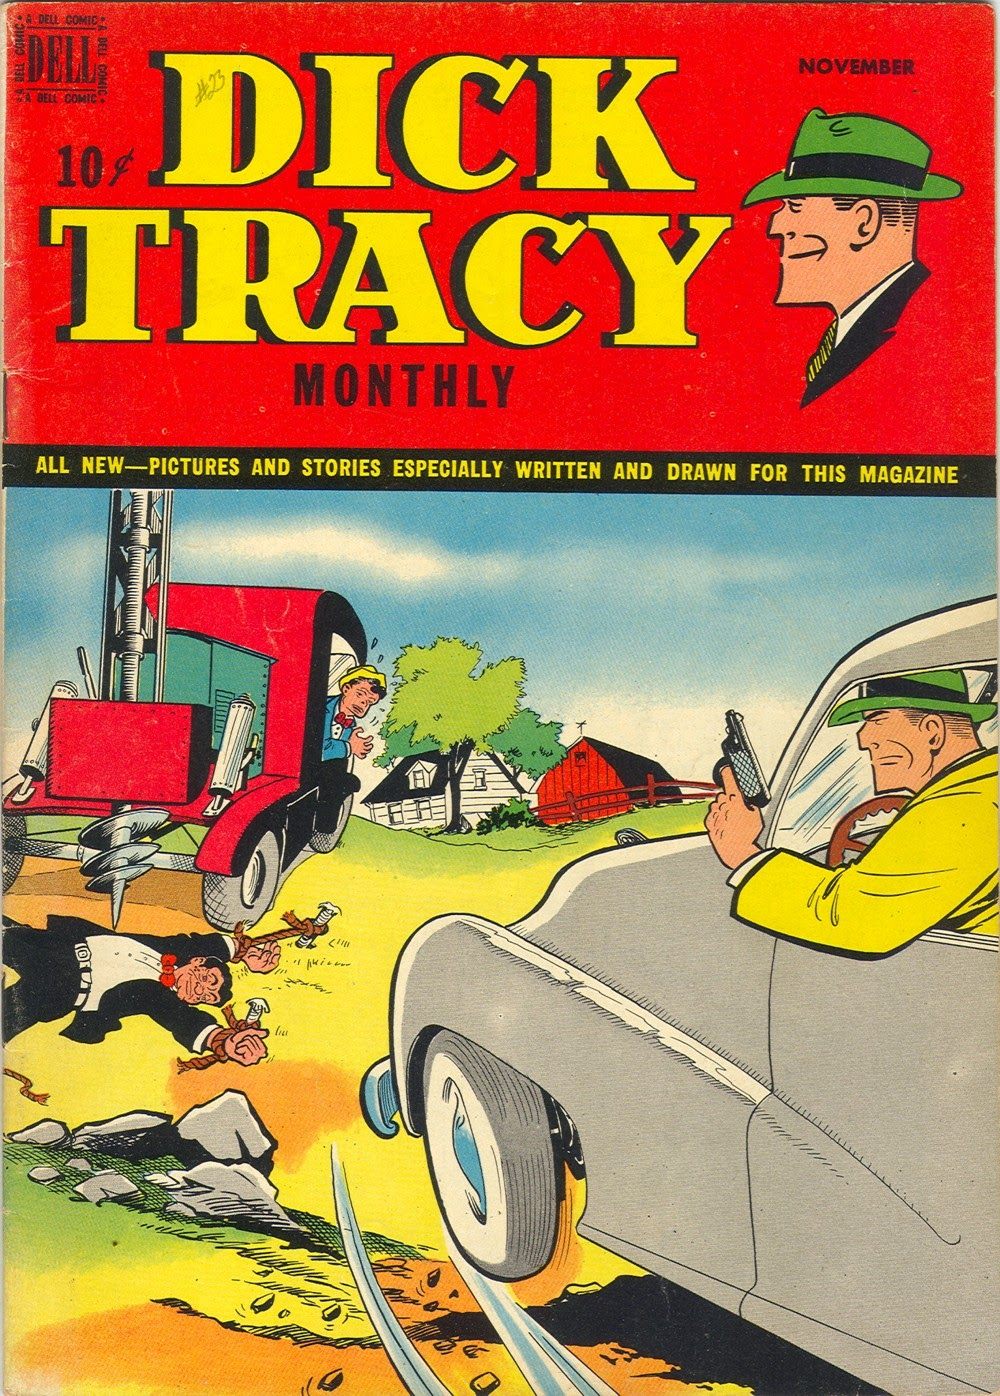 Dick Tracy Monthly 23 Page 1